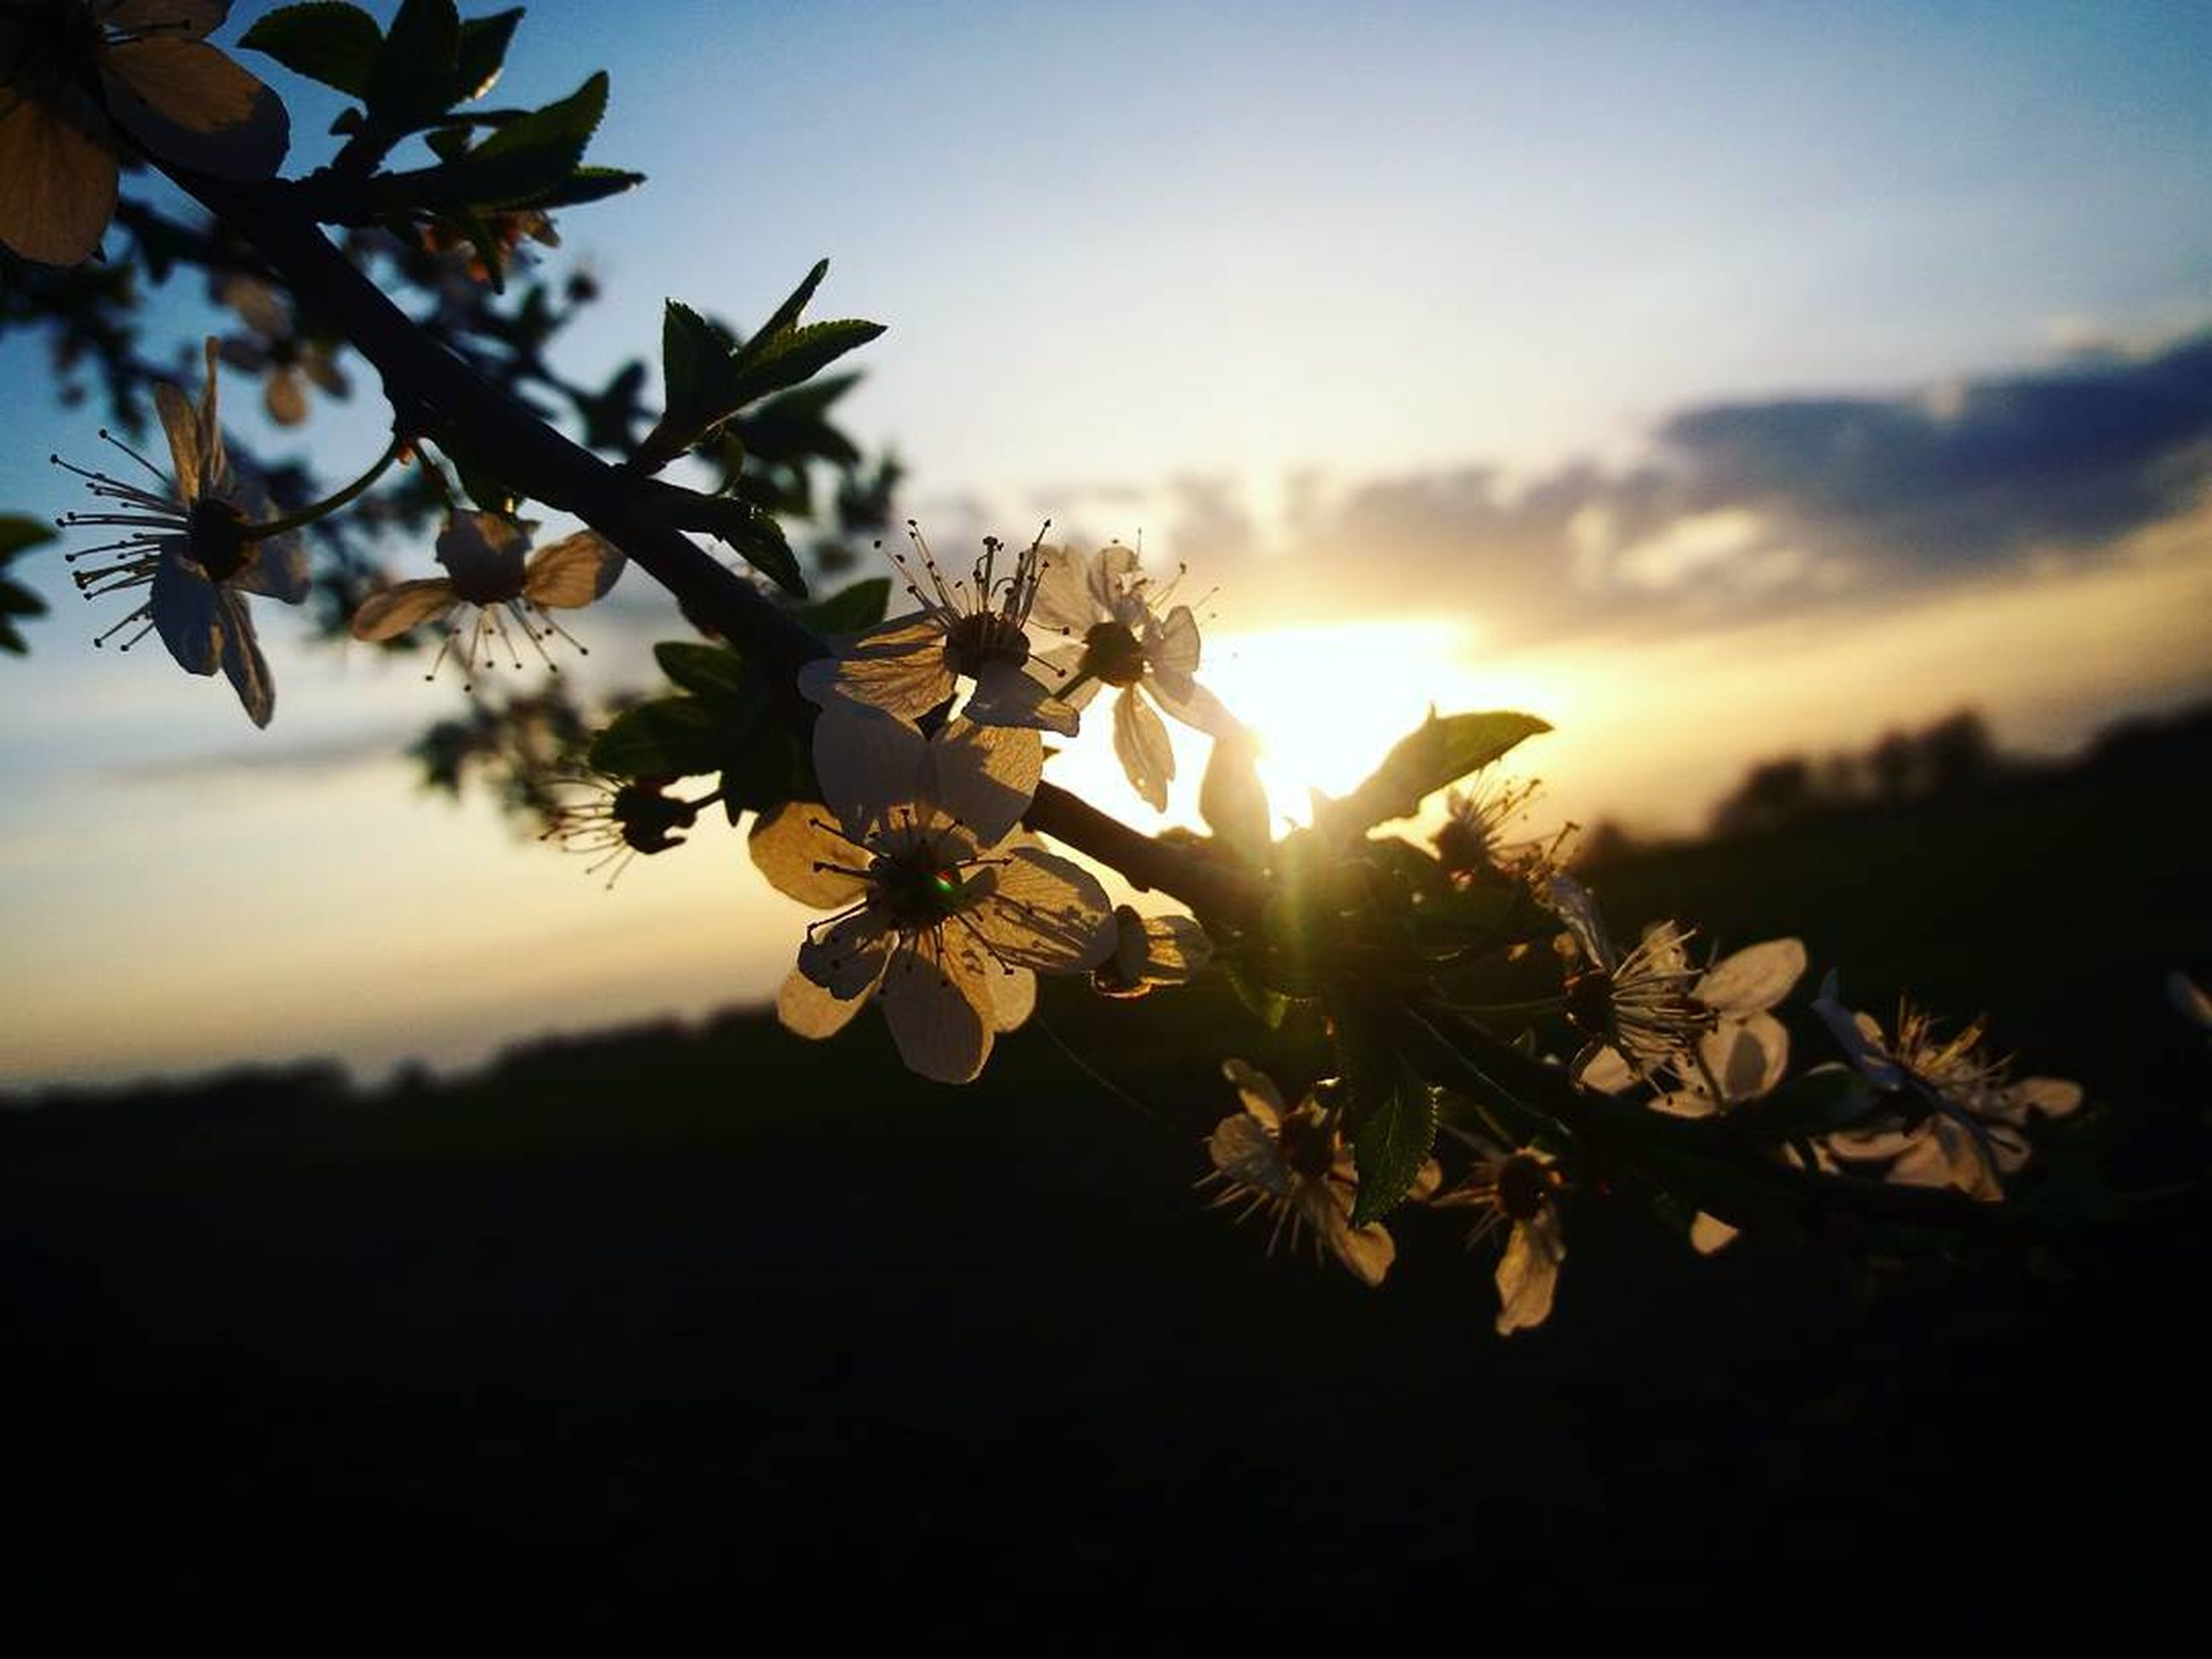 flower, nature, beauty in nature, growth, petal, no people, fragility, sunset, outdoors, sky, close-up, plant, tree, flower head, freshness, branch, blooming, day